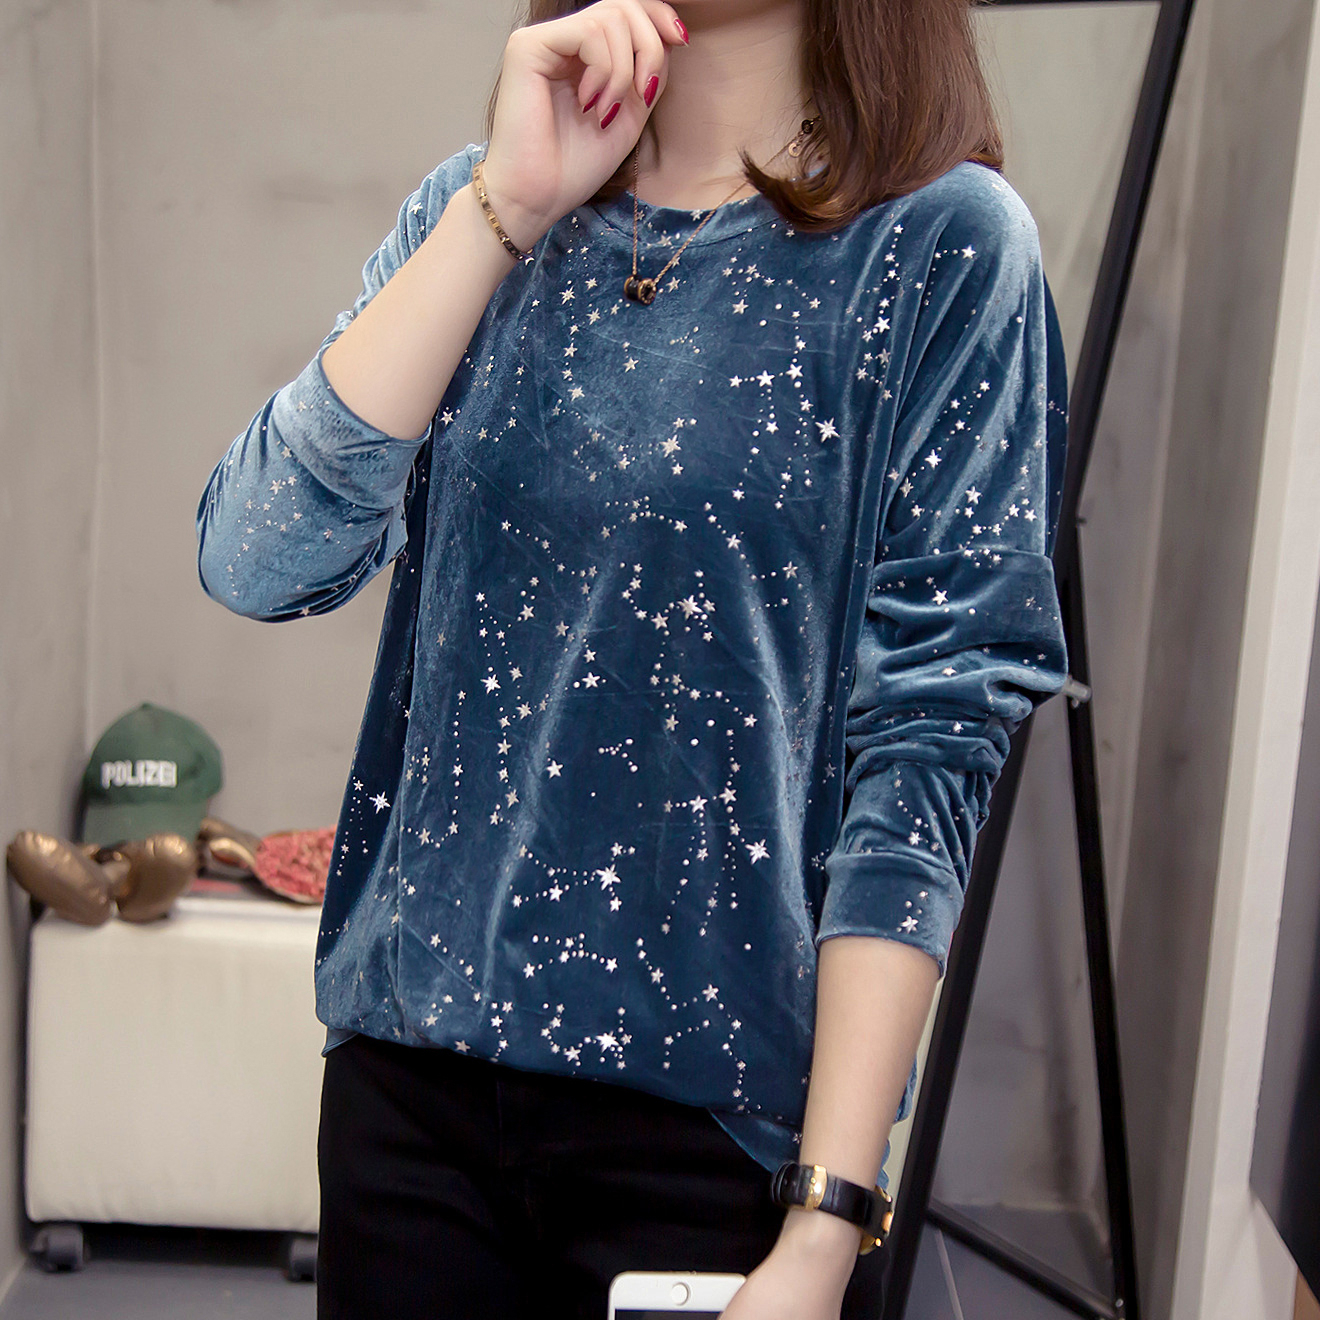 Nkandby Plus Size Starry Sky Women Sweatshirts 2019 Autumn Winter Fashion Drop-shoulder Velour Pullovers Oversize Stylish Tops